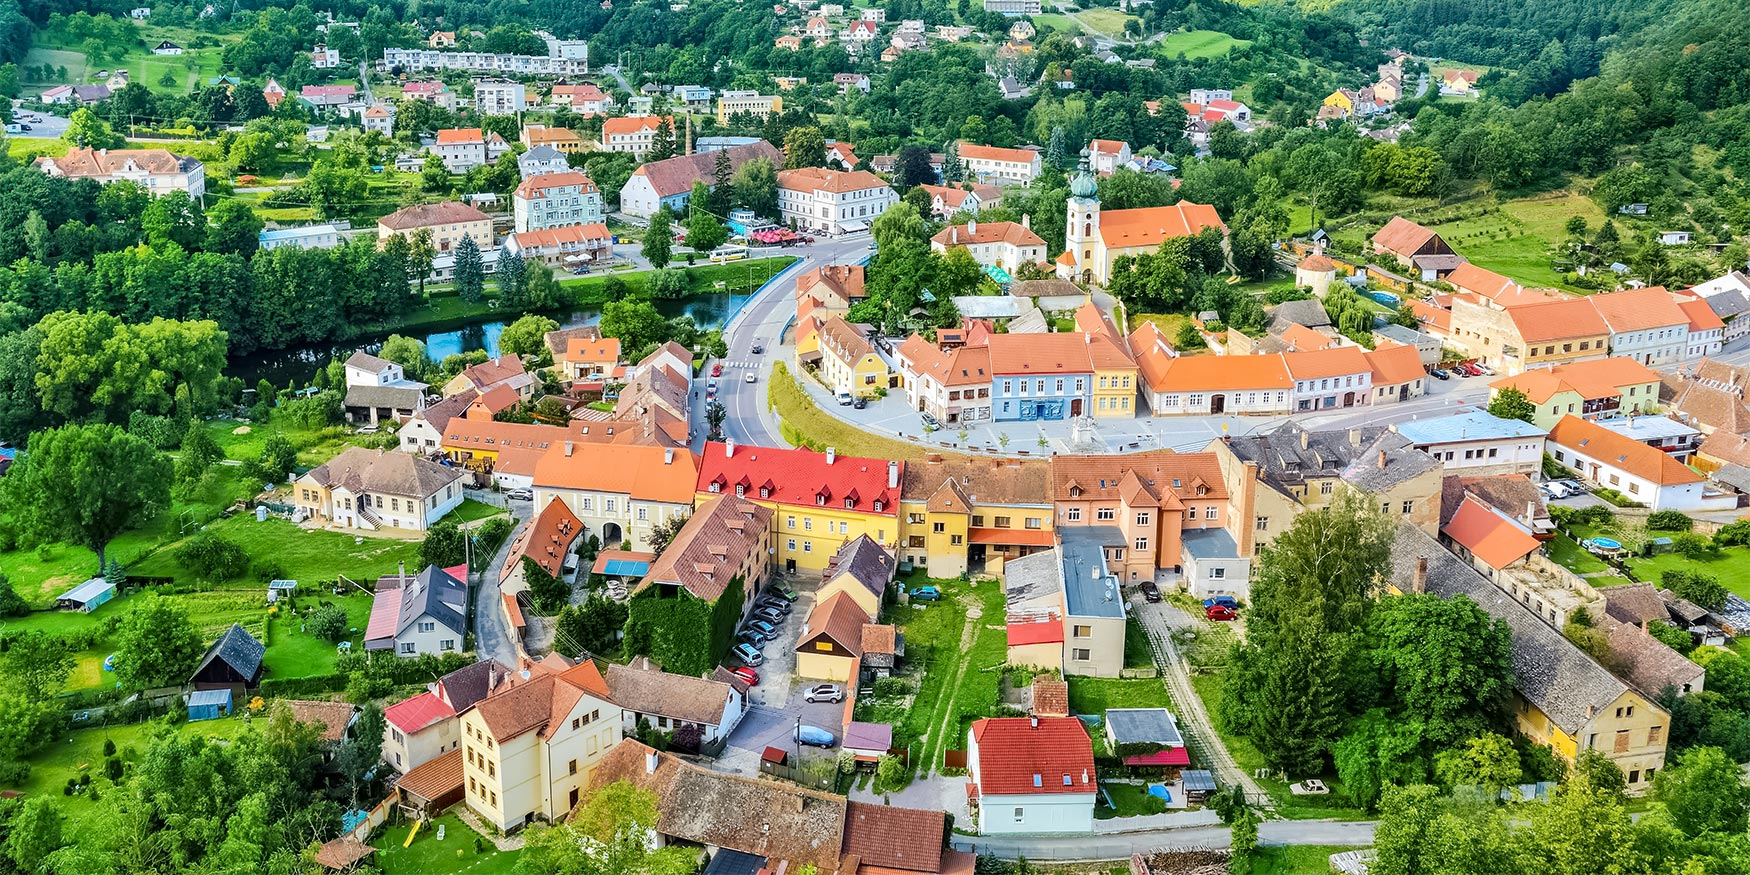 Aerial View of Vranov nad Dyjí, Czechia